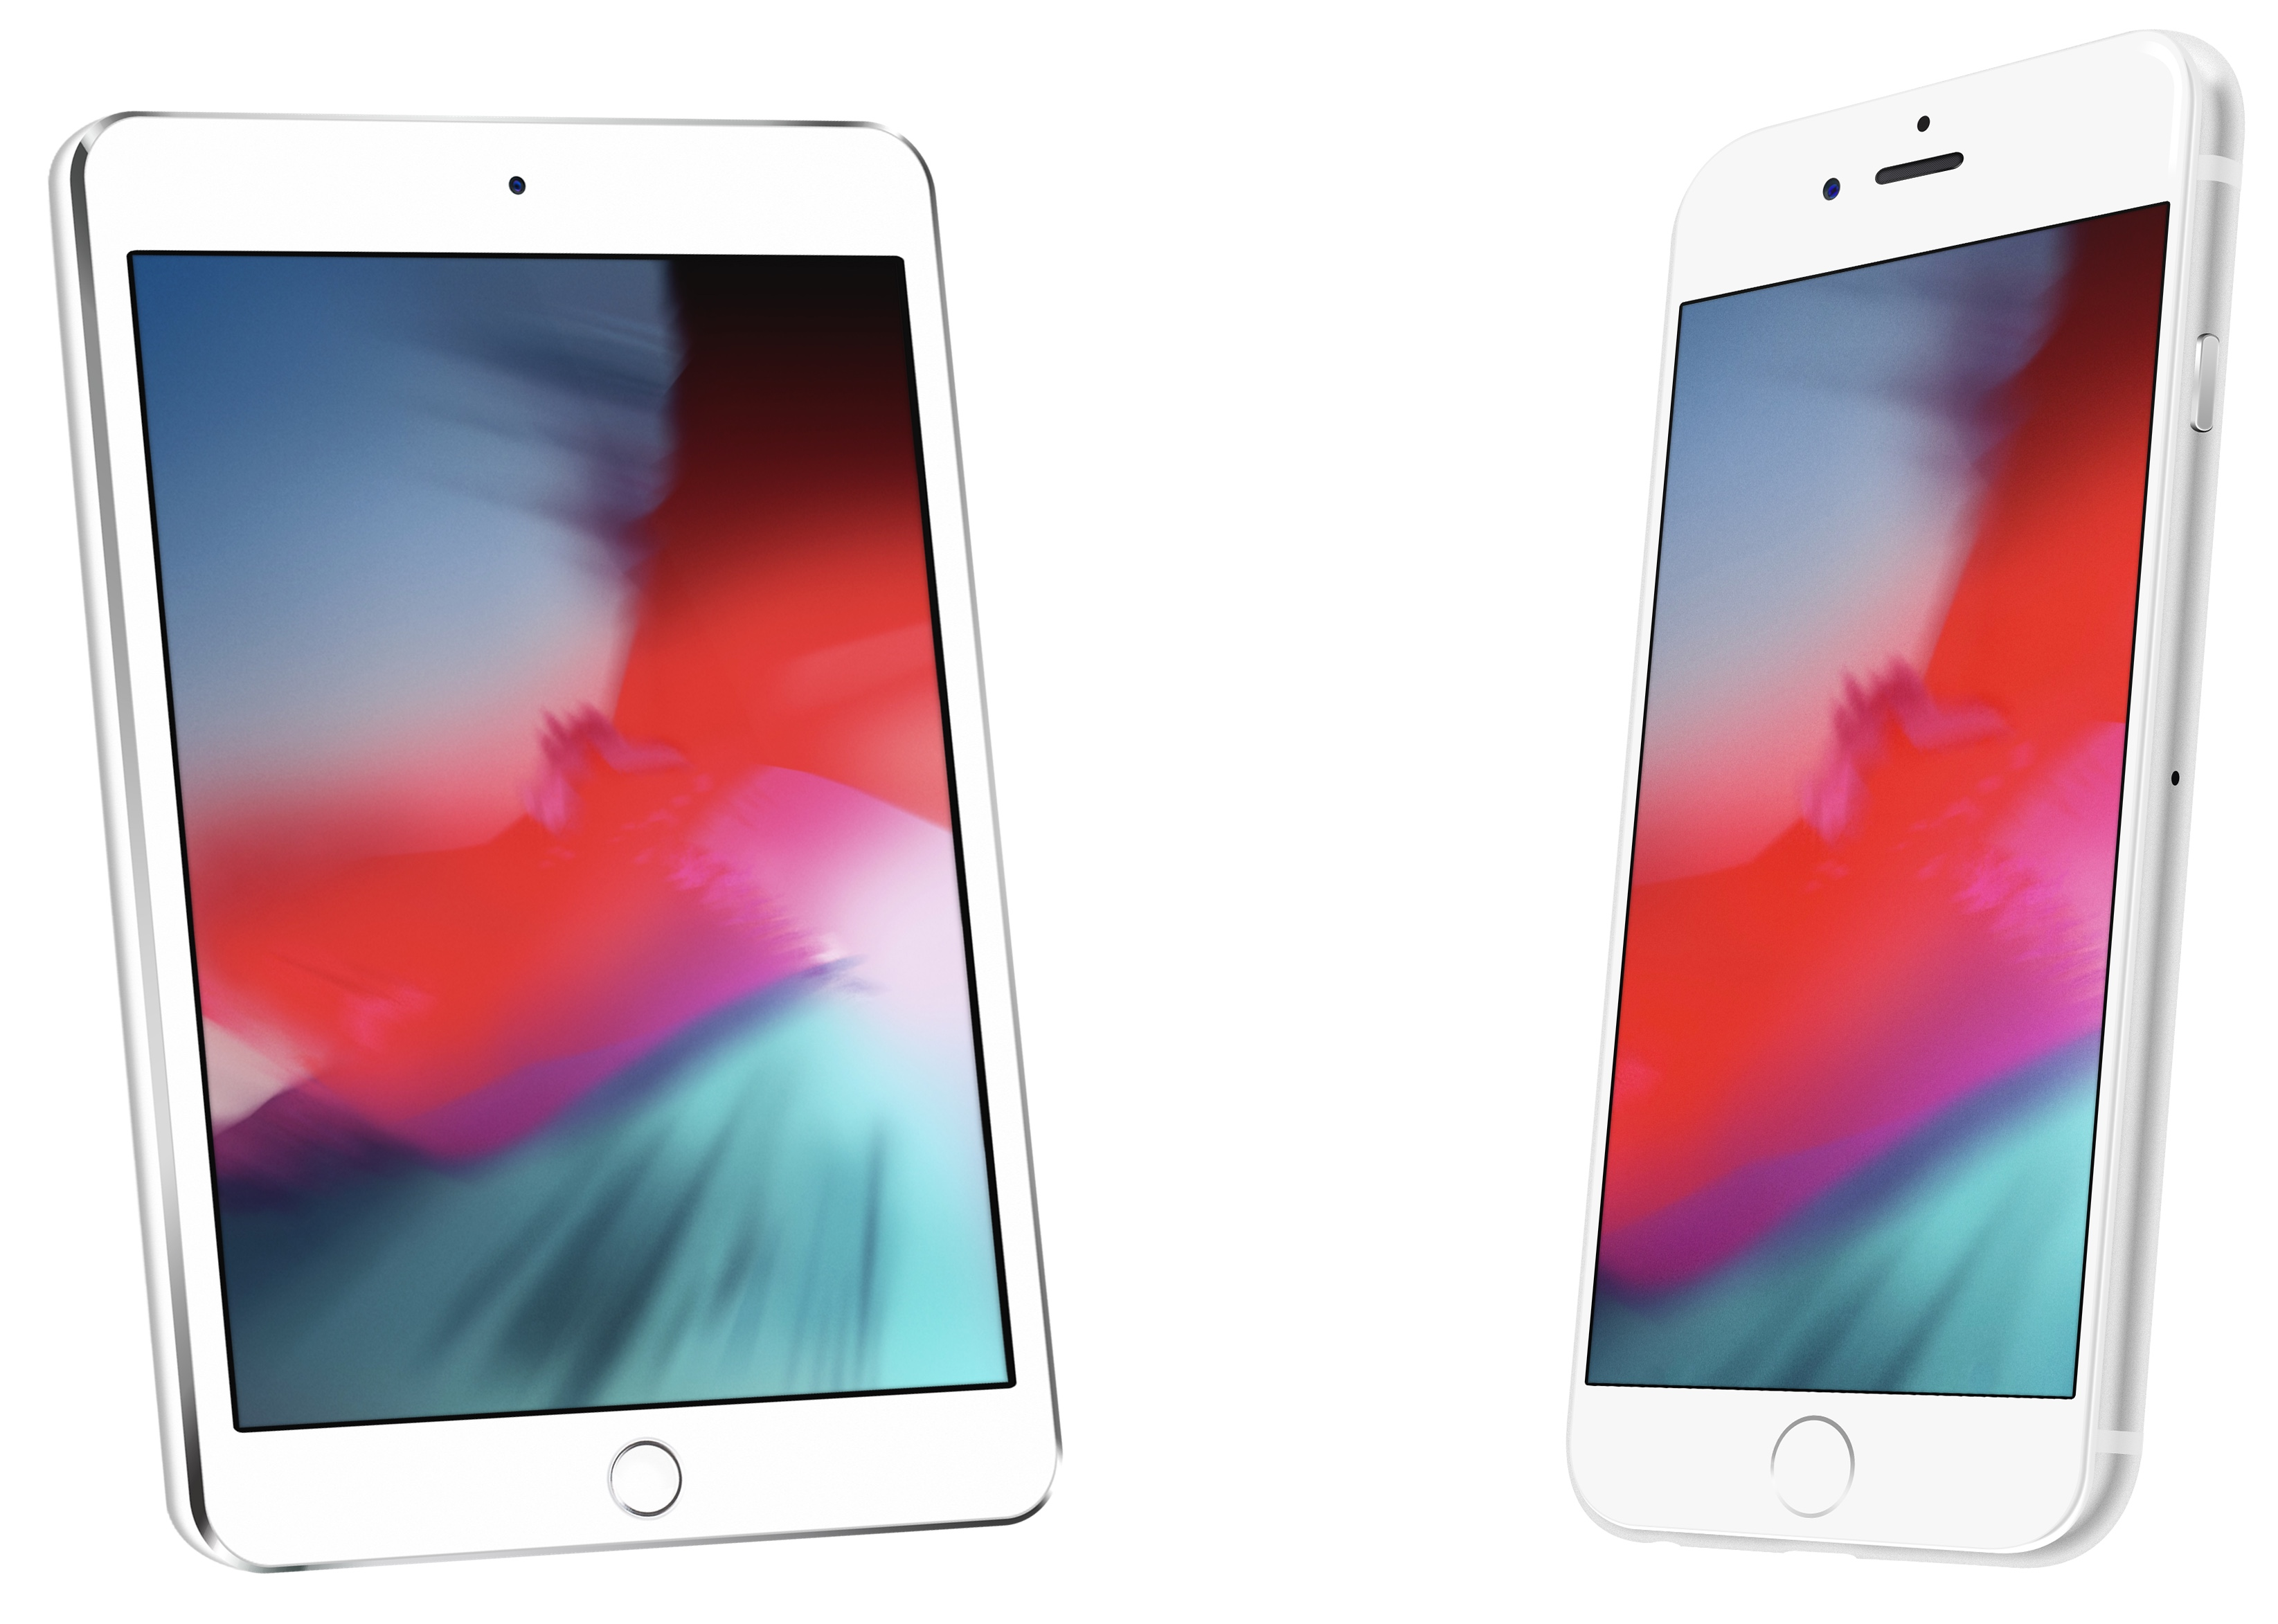 Download IOS 12 Wallpaper For IPhone & IPad